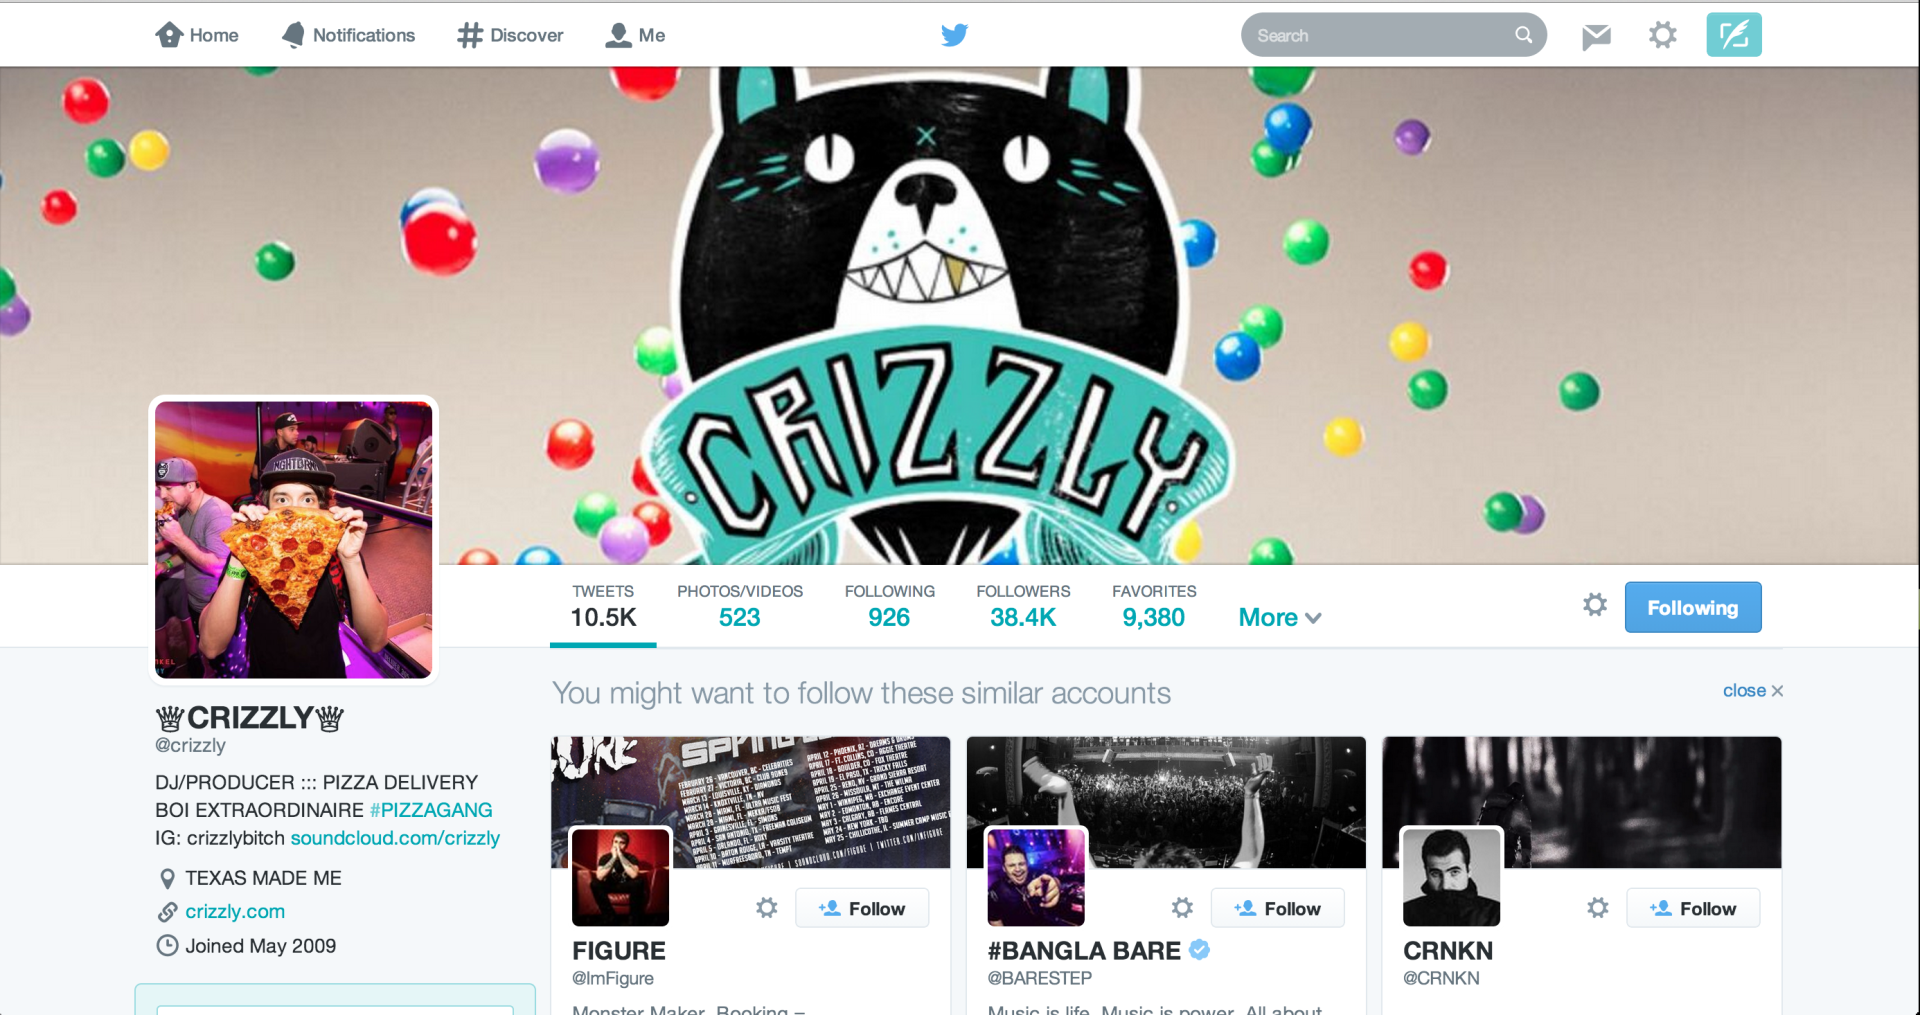 Crizzly using my photo as his Twitter profile photo.